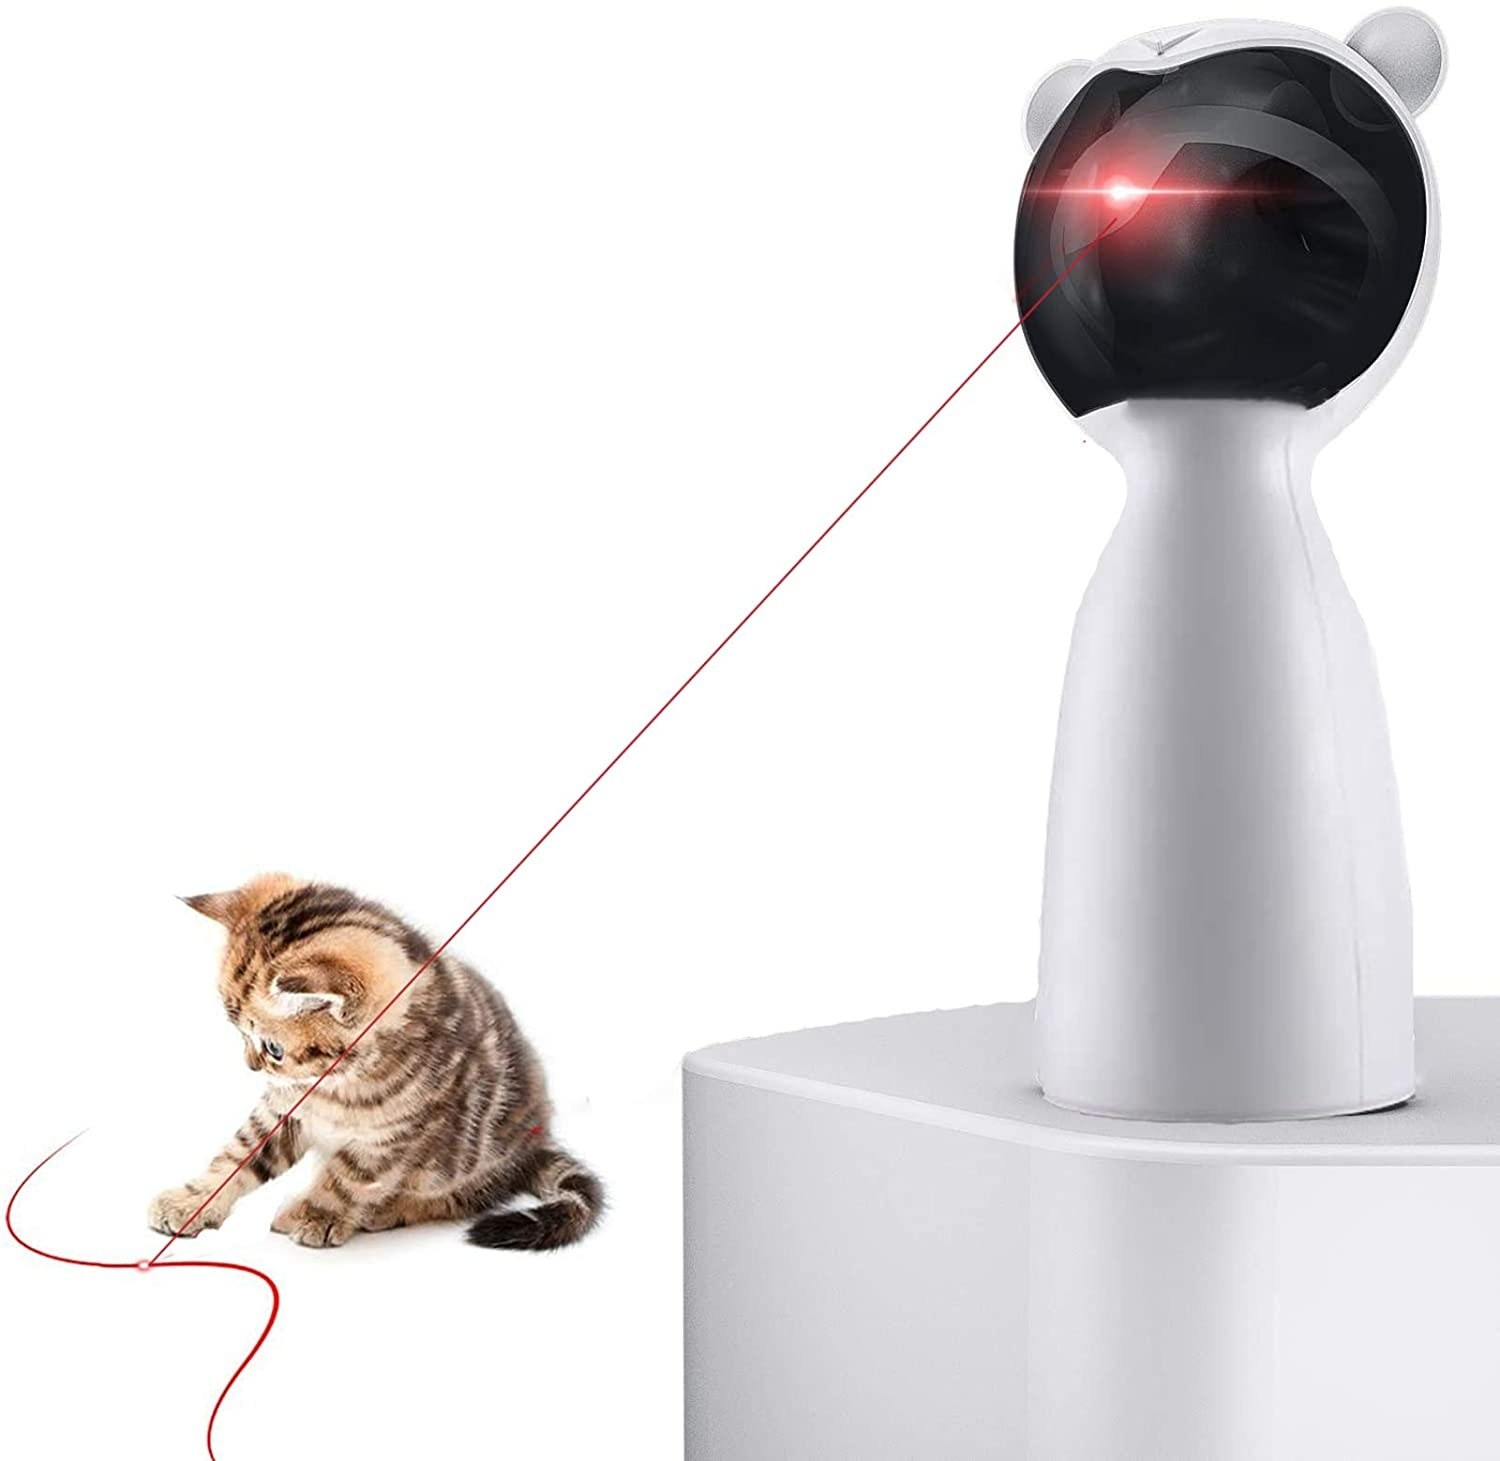 The laser cat toy